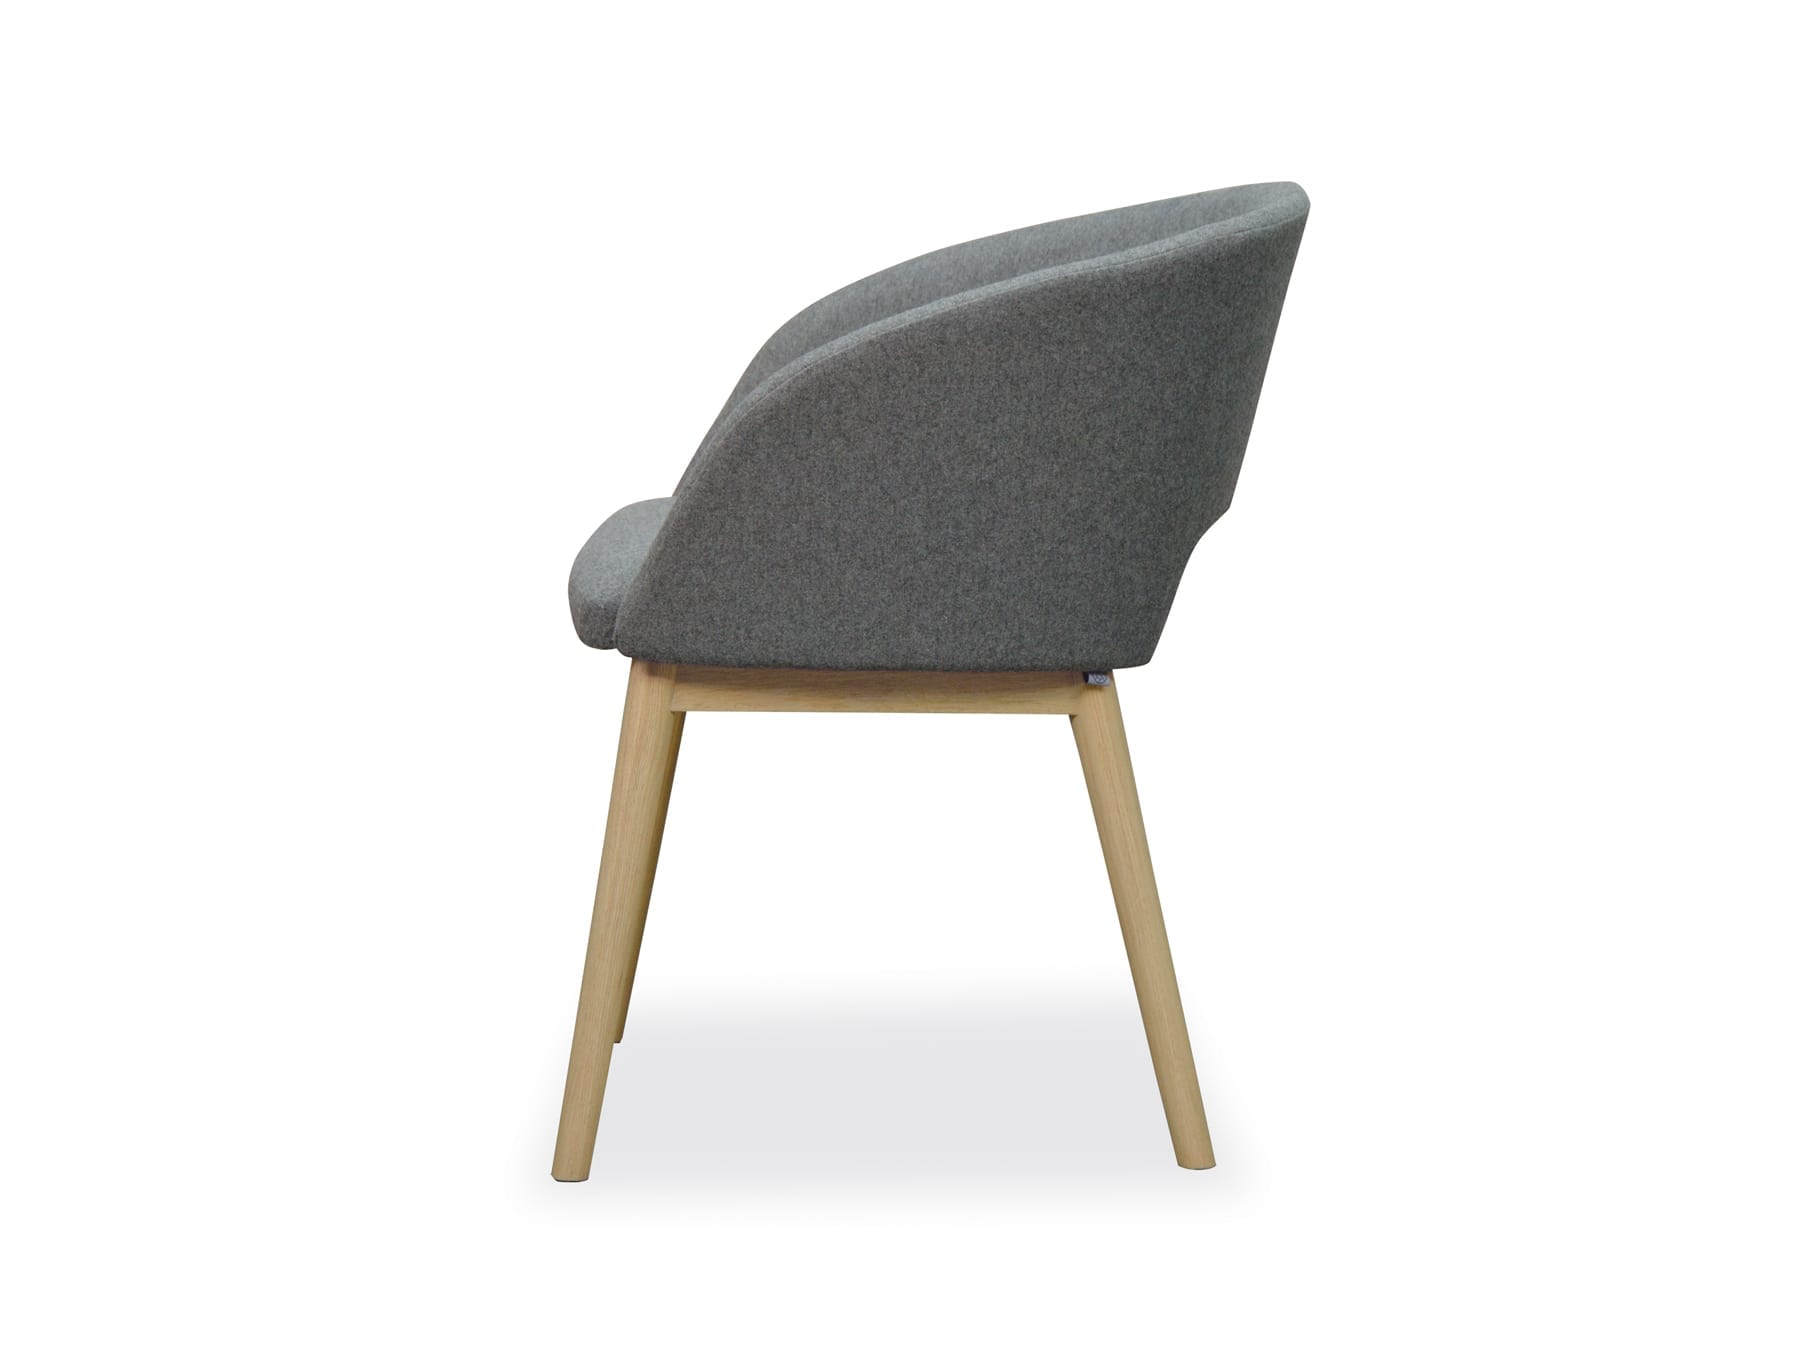 Sketch Roundi Dining Chair available at McKenzie & Willis